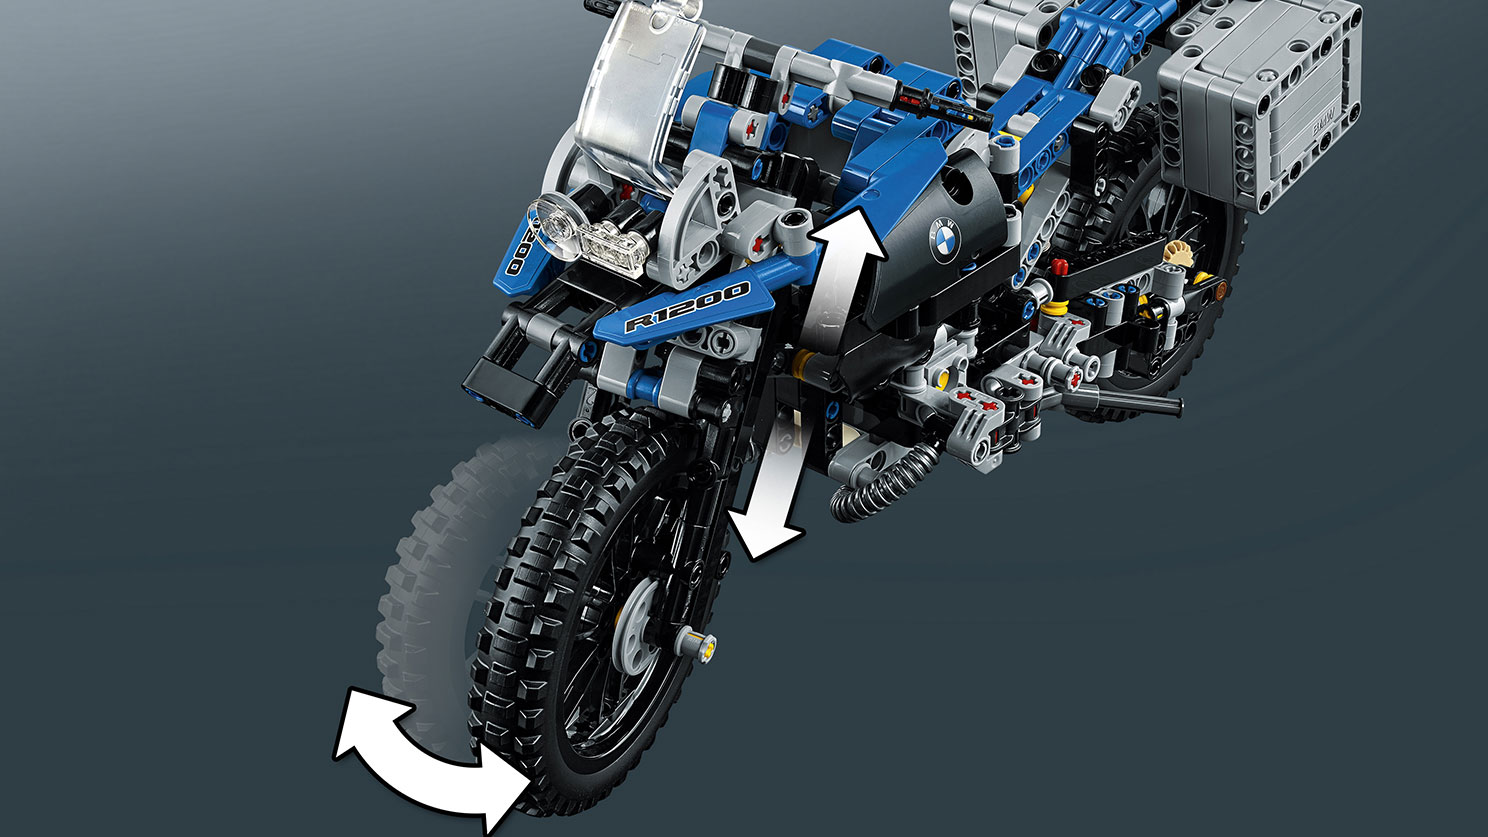 BMW Unveils a Flying Motorbike Concept Based on Lego